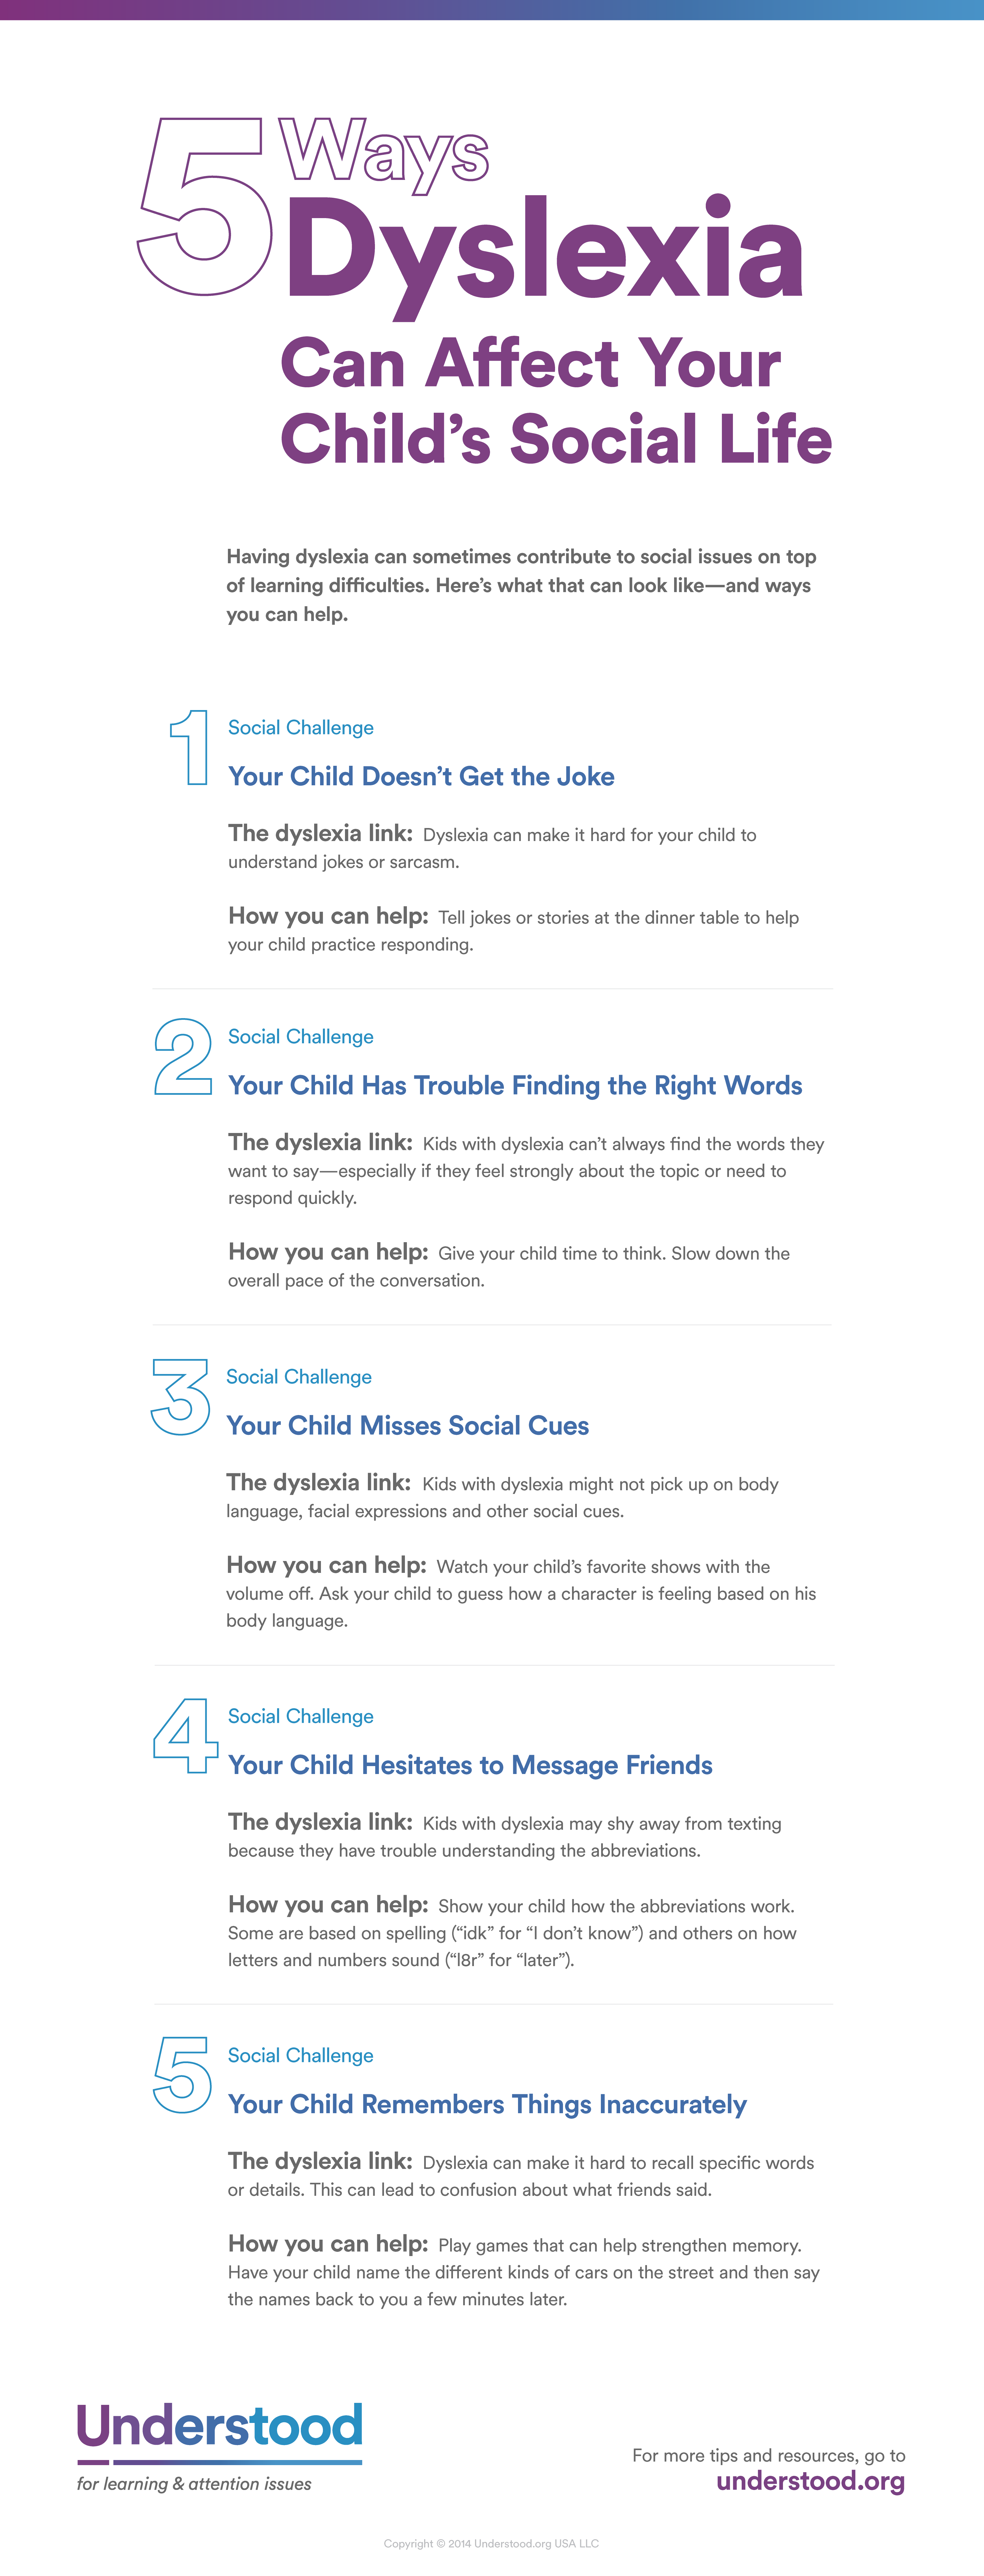 5 Ways Dyslexia Can Affect Your Child's Social Life | Lesson